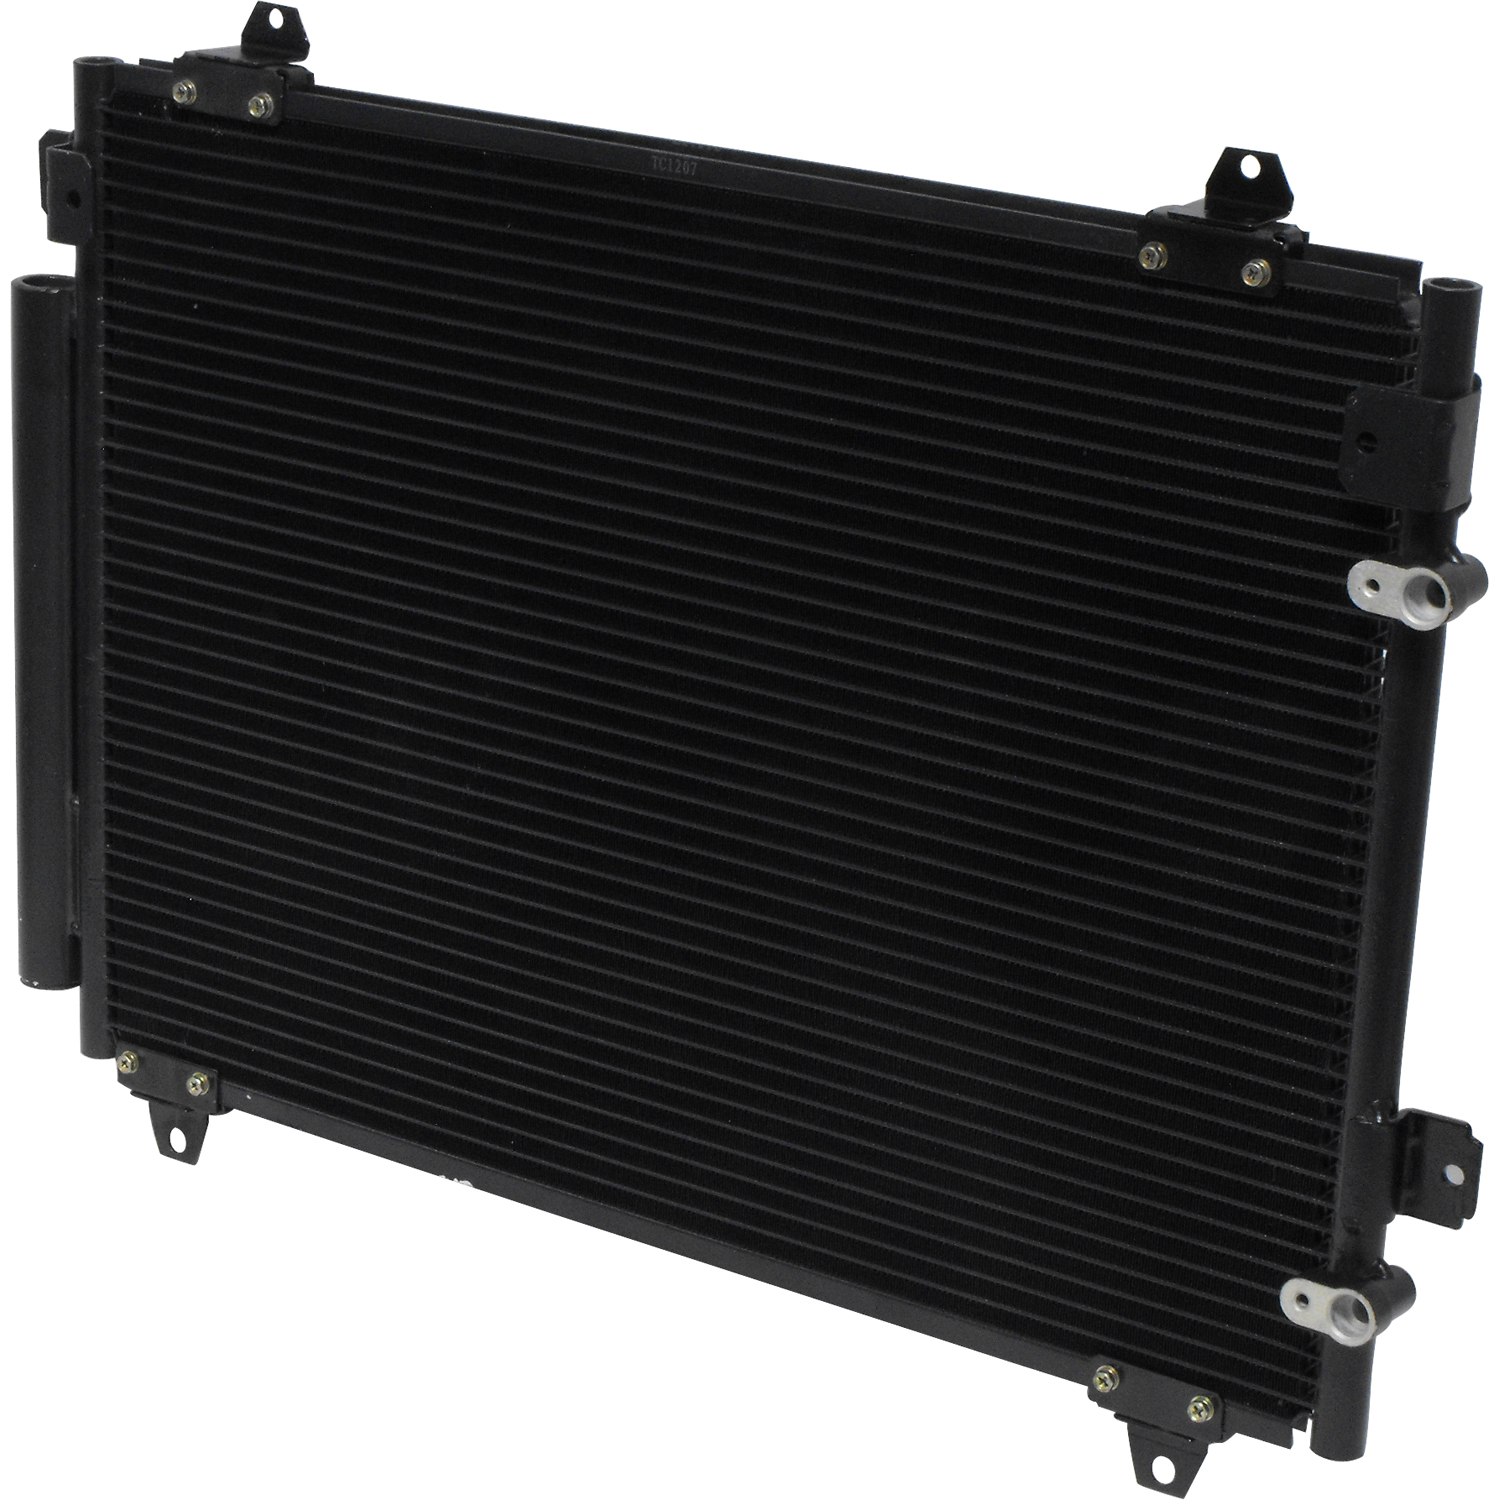 Condenser Parallel Flow CADI CTS 07-03